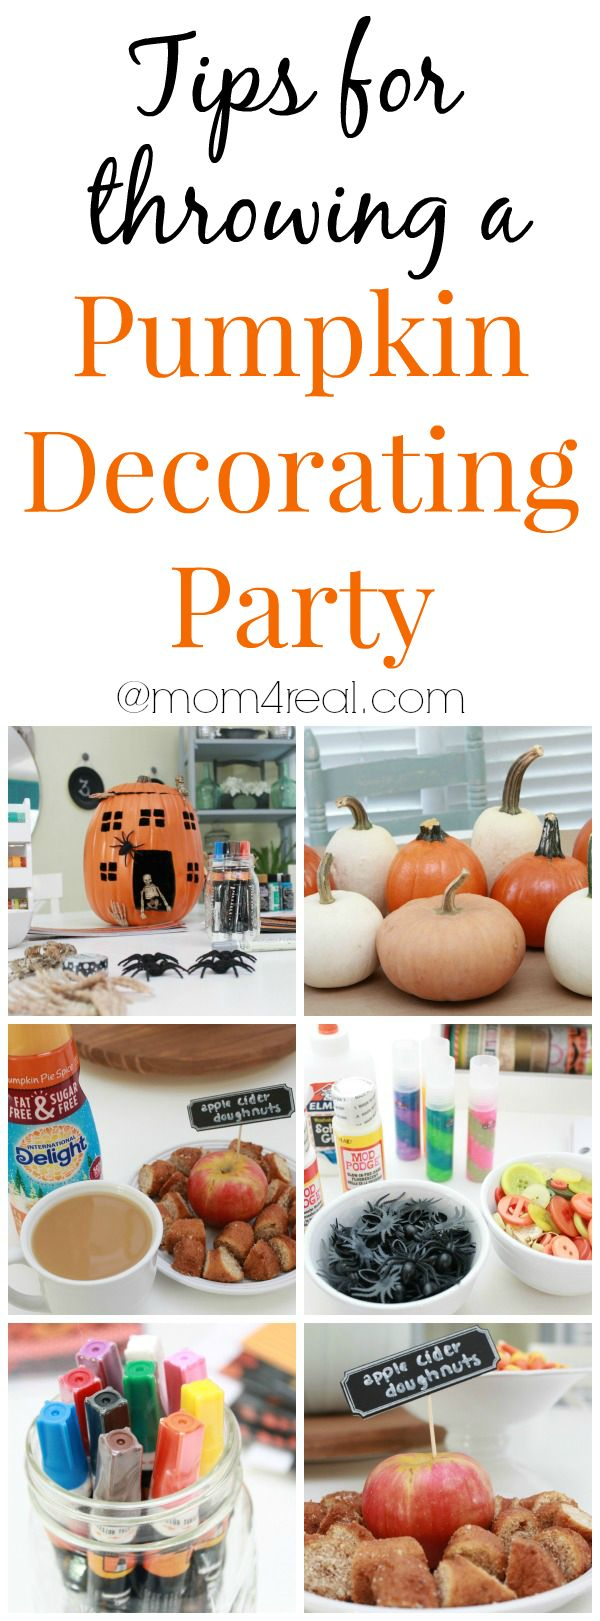 Tips for throwing a Pumpkin Decorating Party and tons more pumpkin decorating ideas at mom4real.com